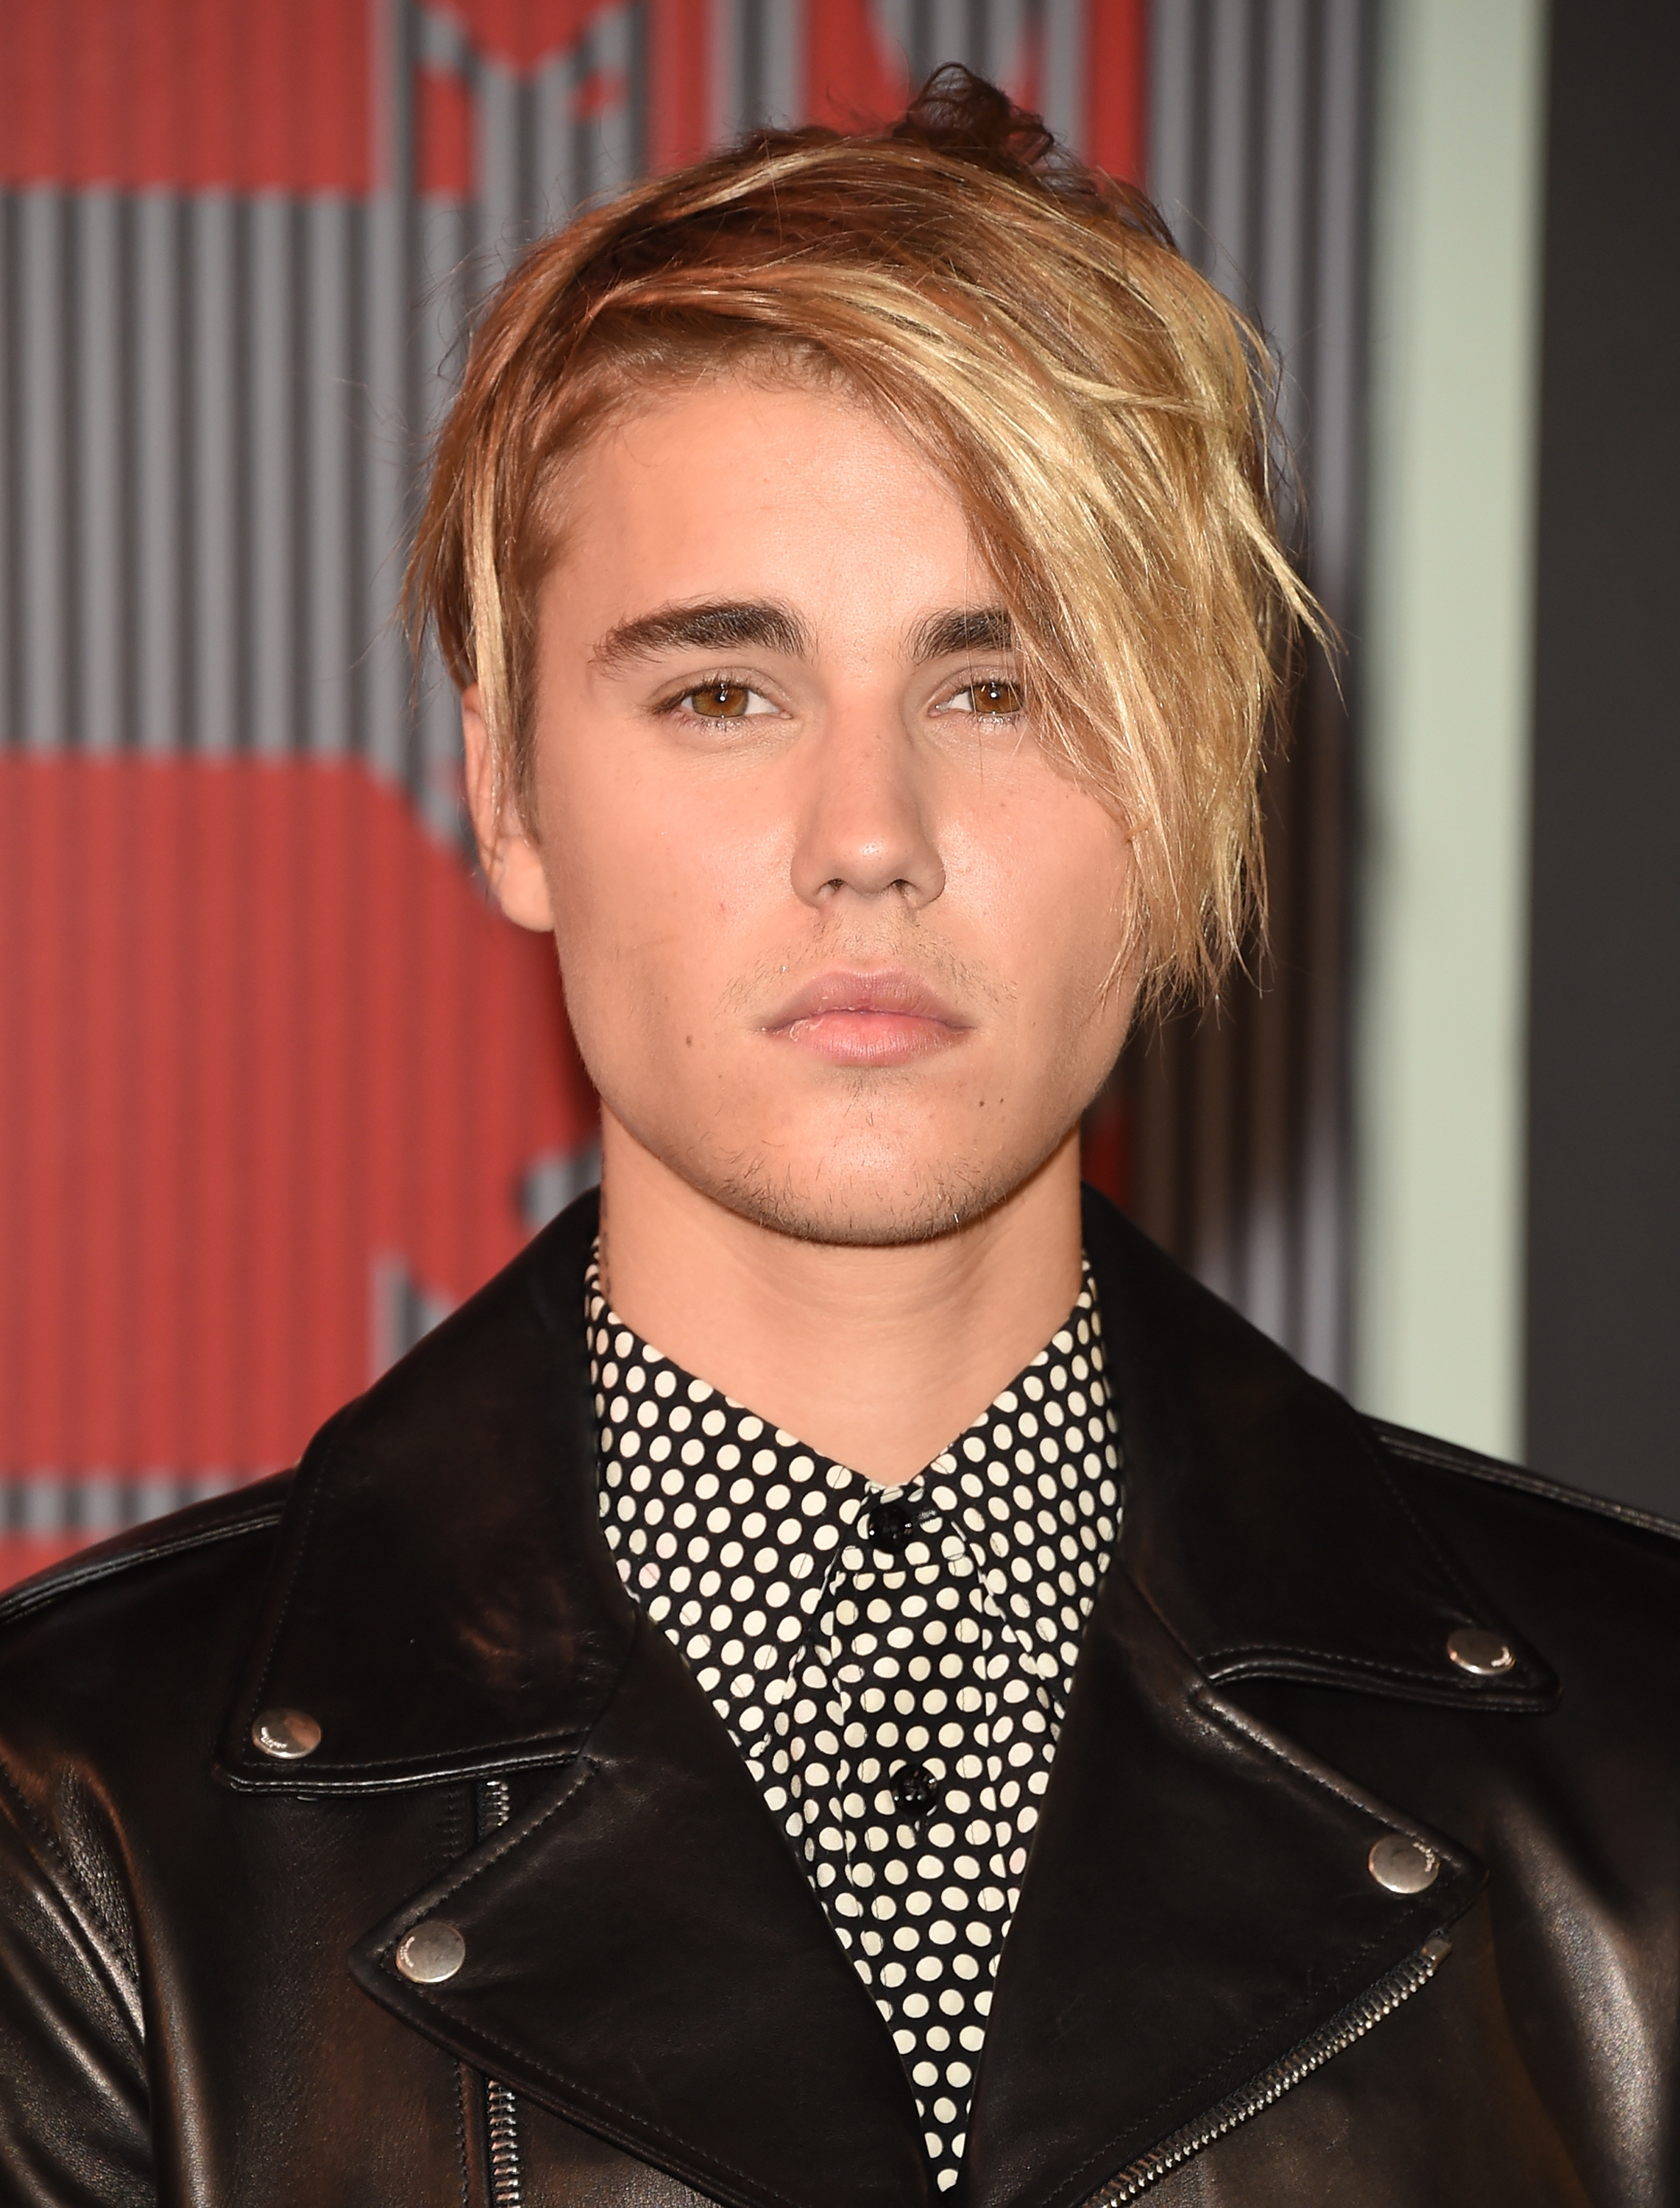 Justin Biebers First VMA Outfit Was What Every Dude In Your - Justin bieber new hairstyle vma